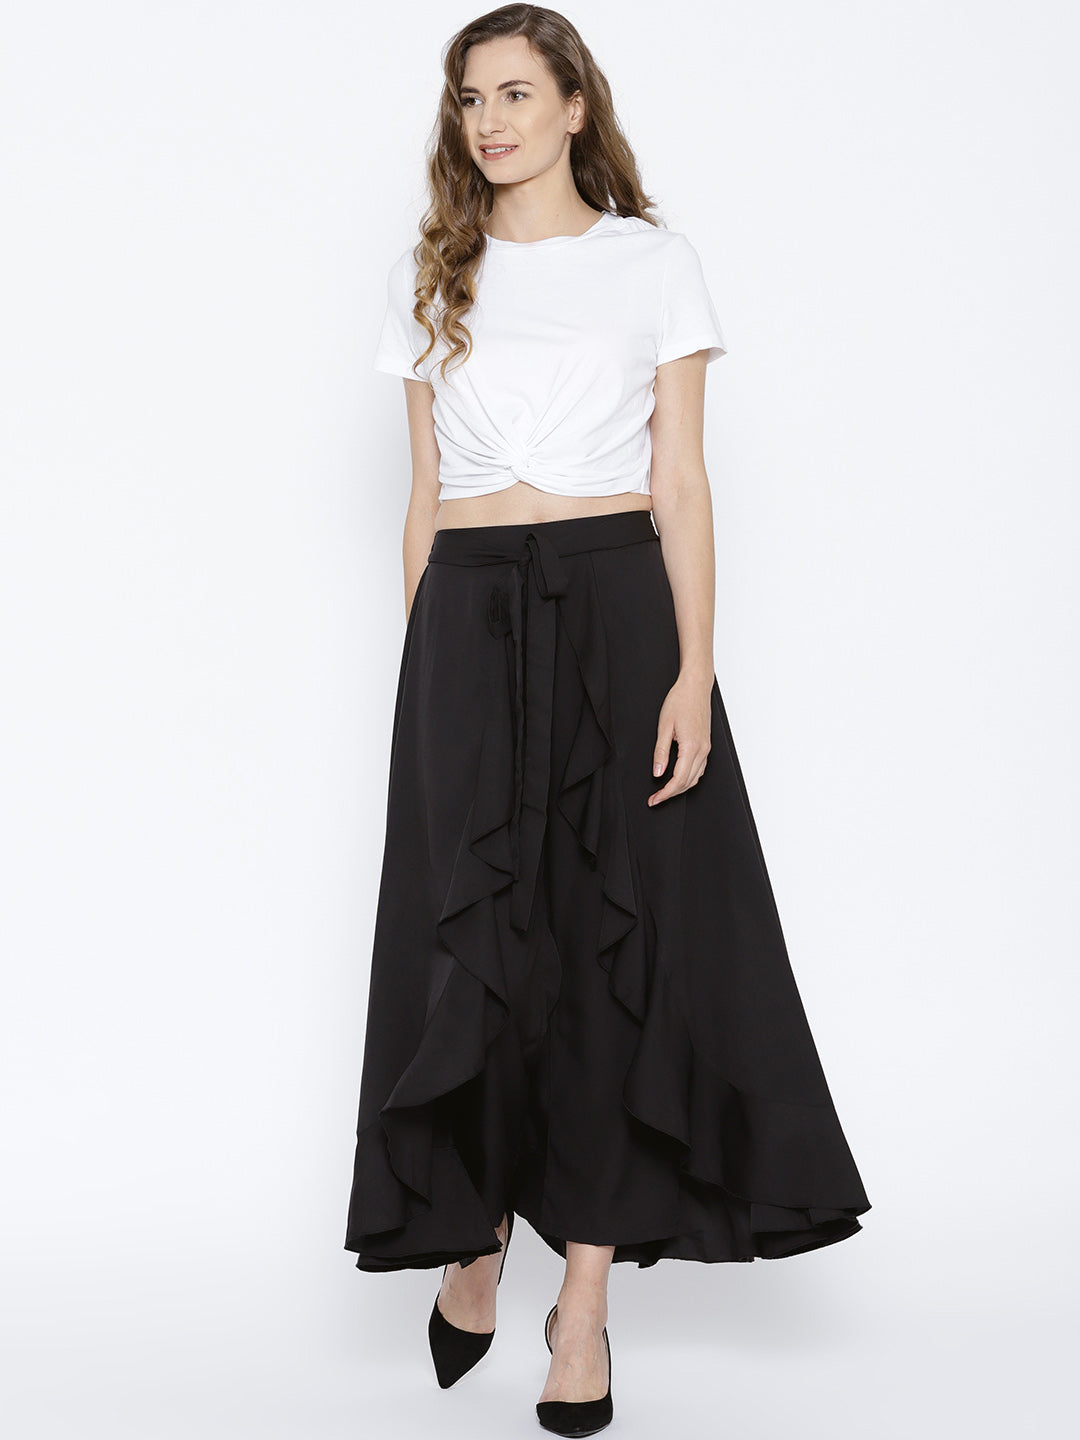 Black Solid Ruffled Flared Maxi Skirt with Attached Trousers